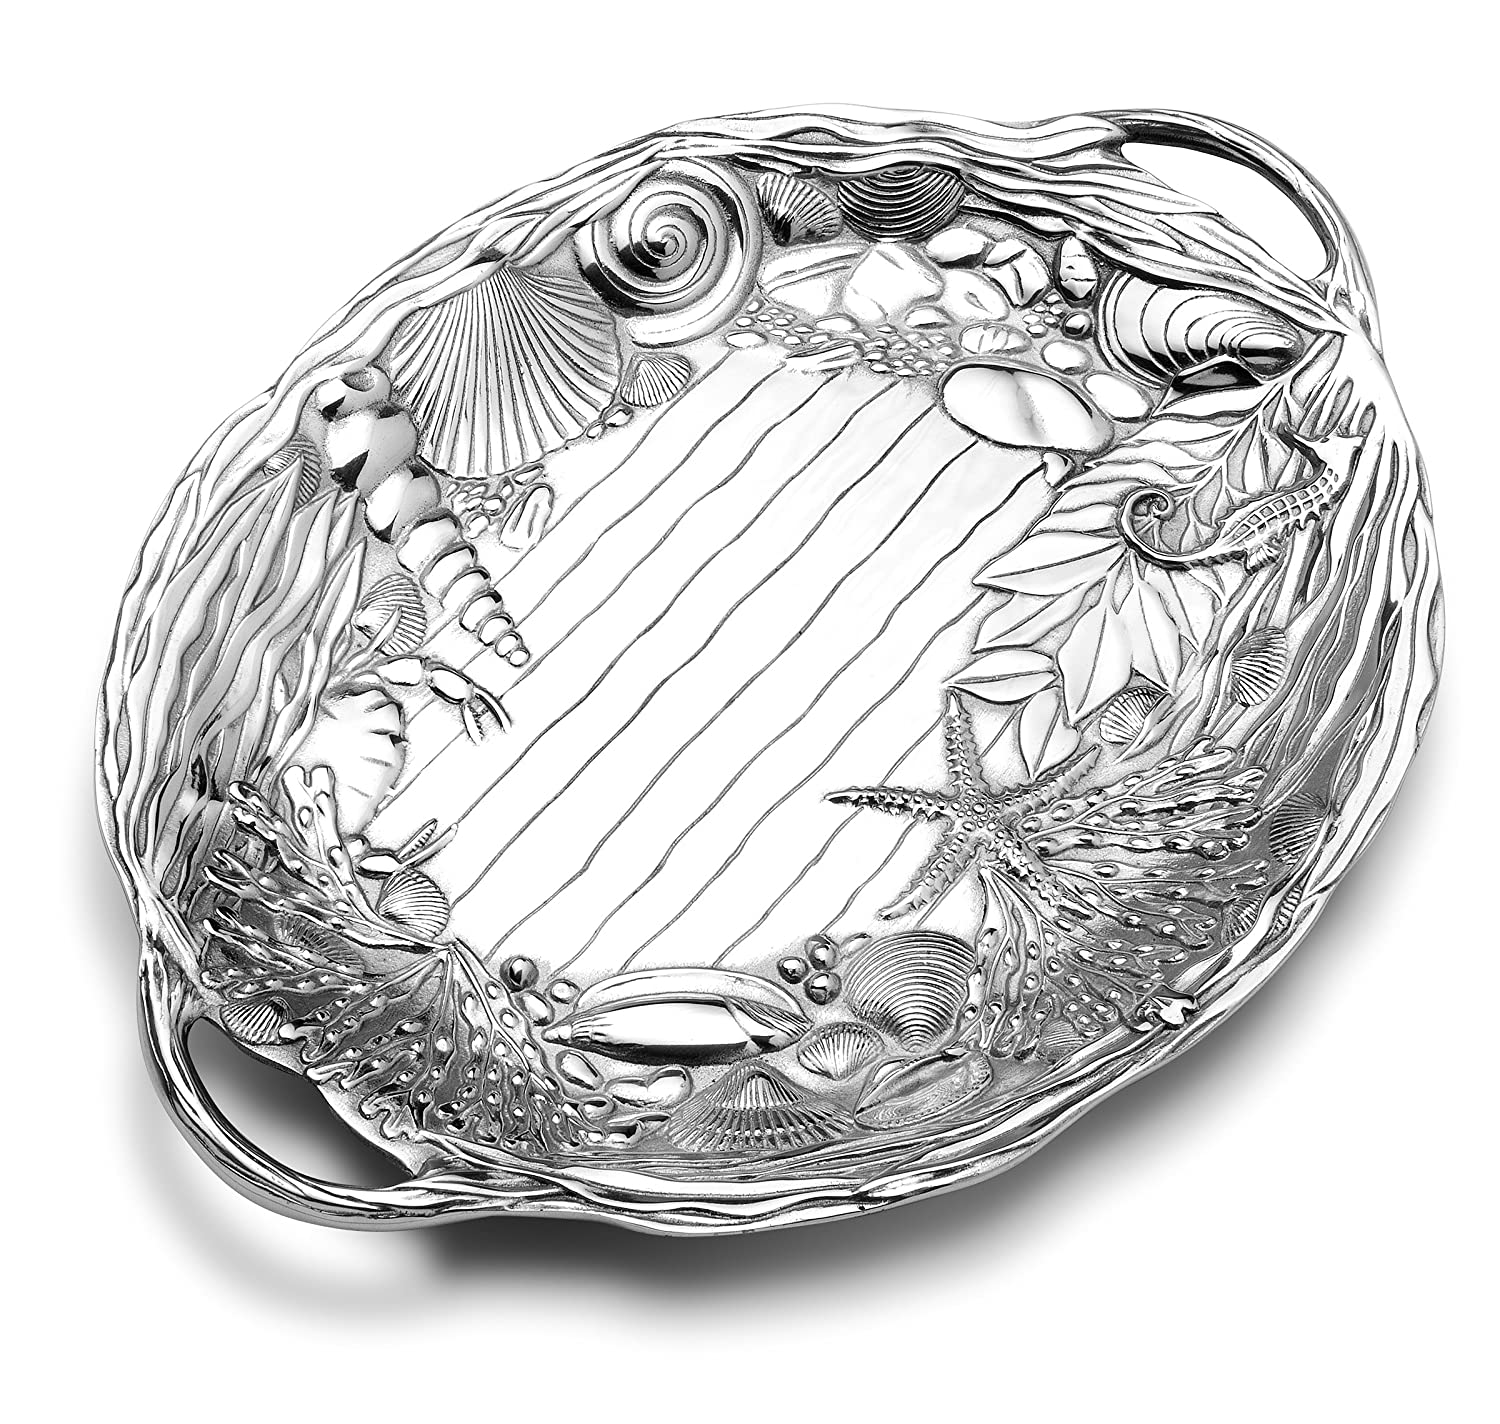 Coastal Christmas Tablescape Décor - sea life oval aluminum alloy tray with handles by Designer Wilton Armetale